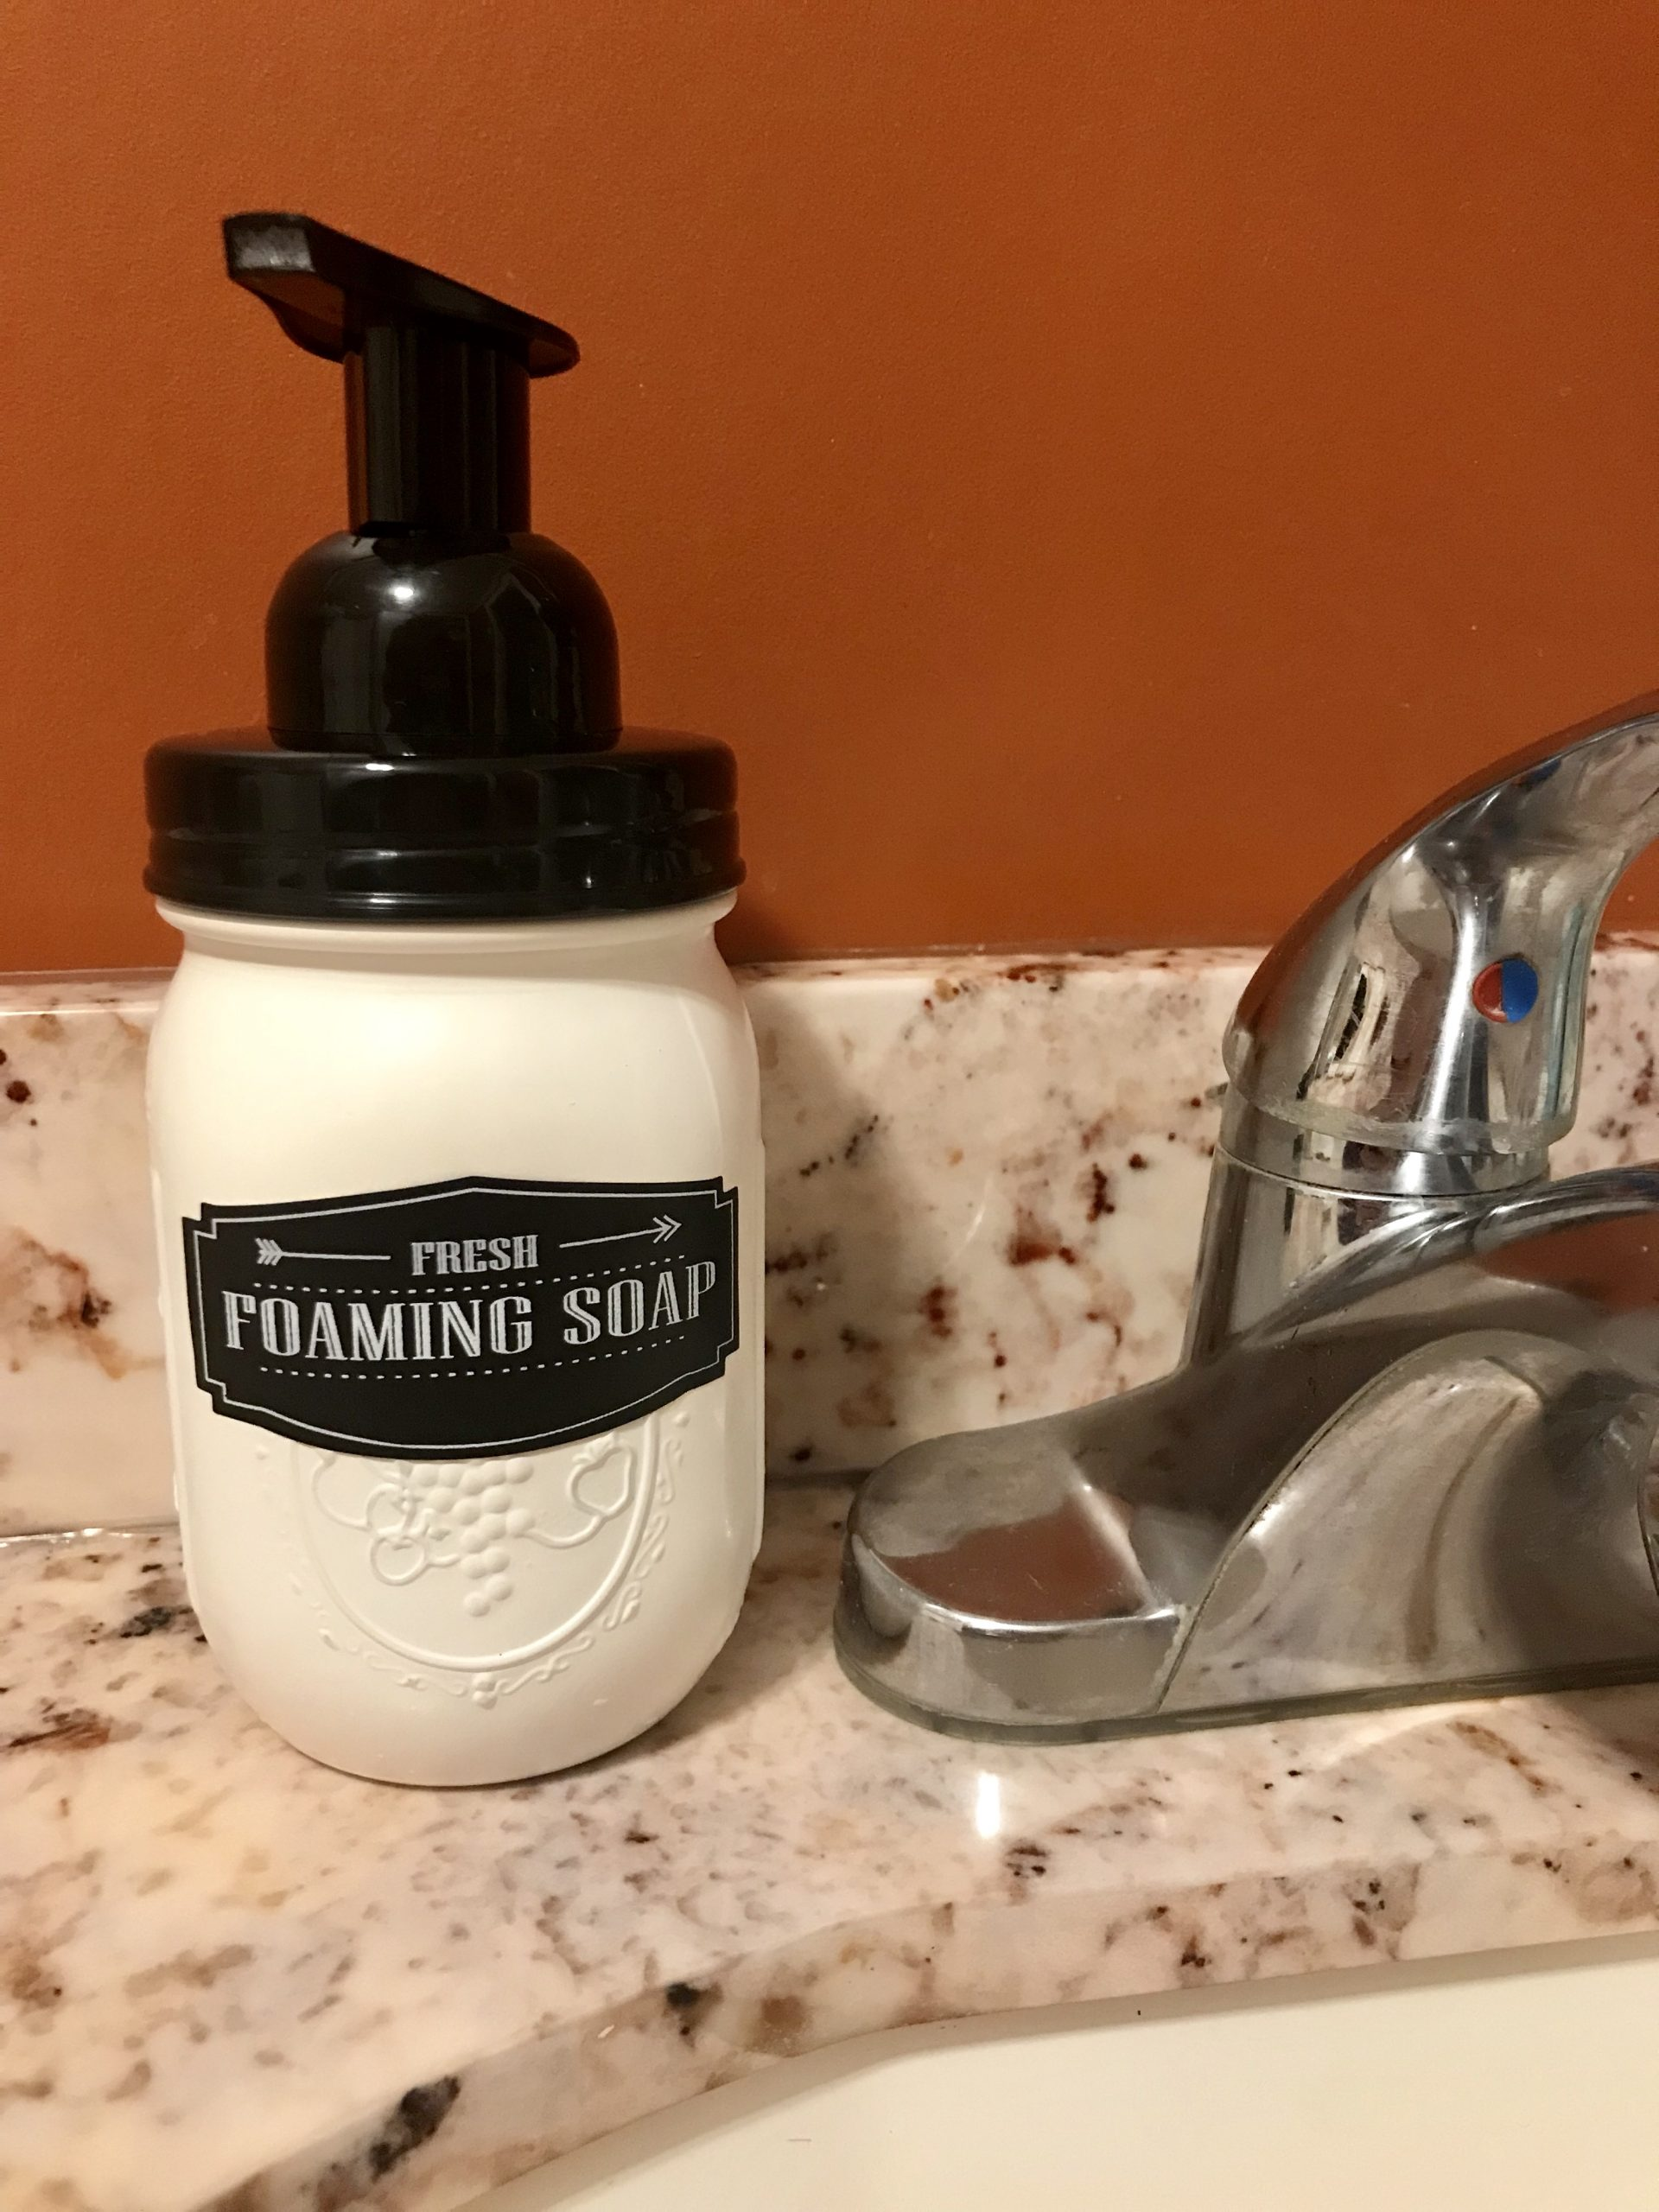 completed DIY foaming hand soap dispenser by the sink